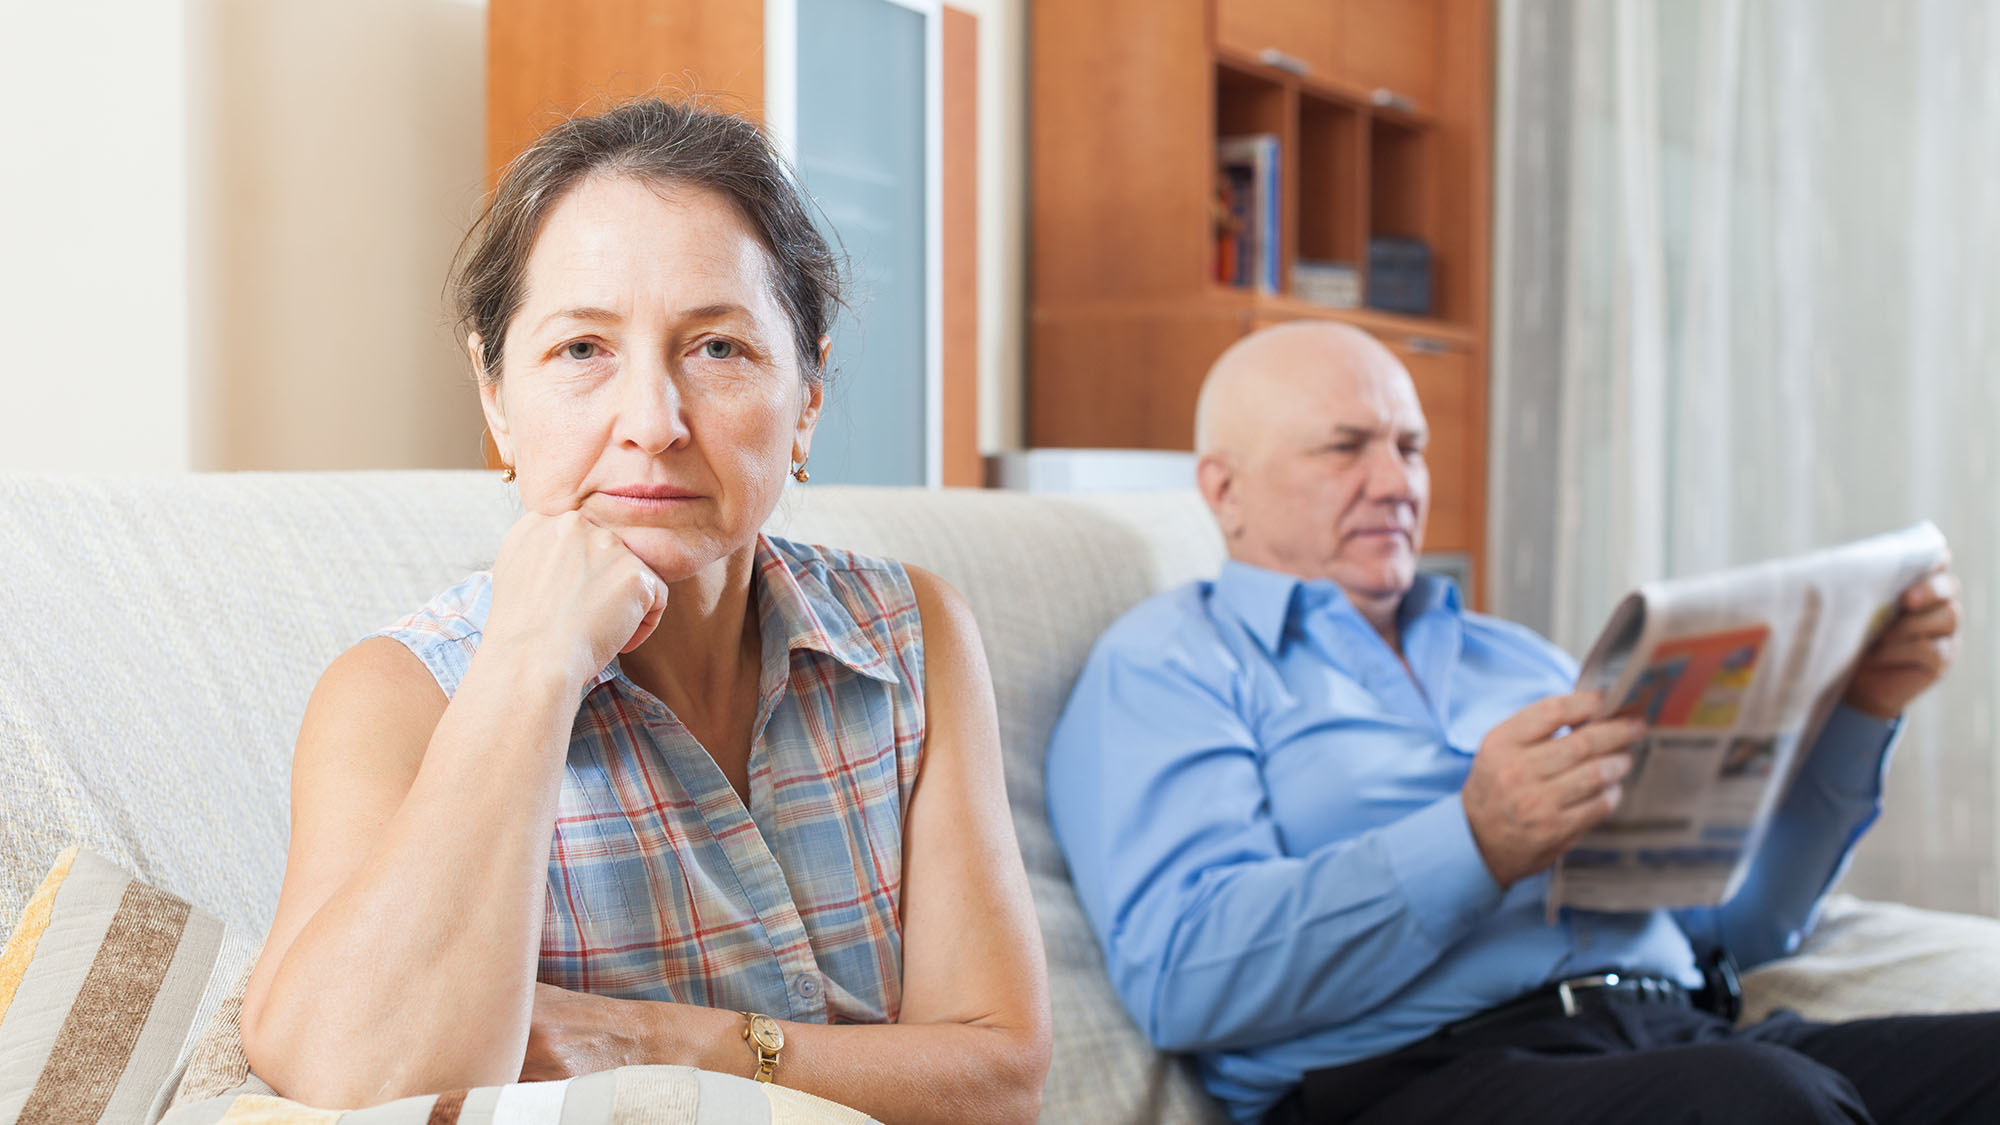 What to do when your partner won't acknowledge their hearing loss